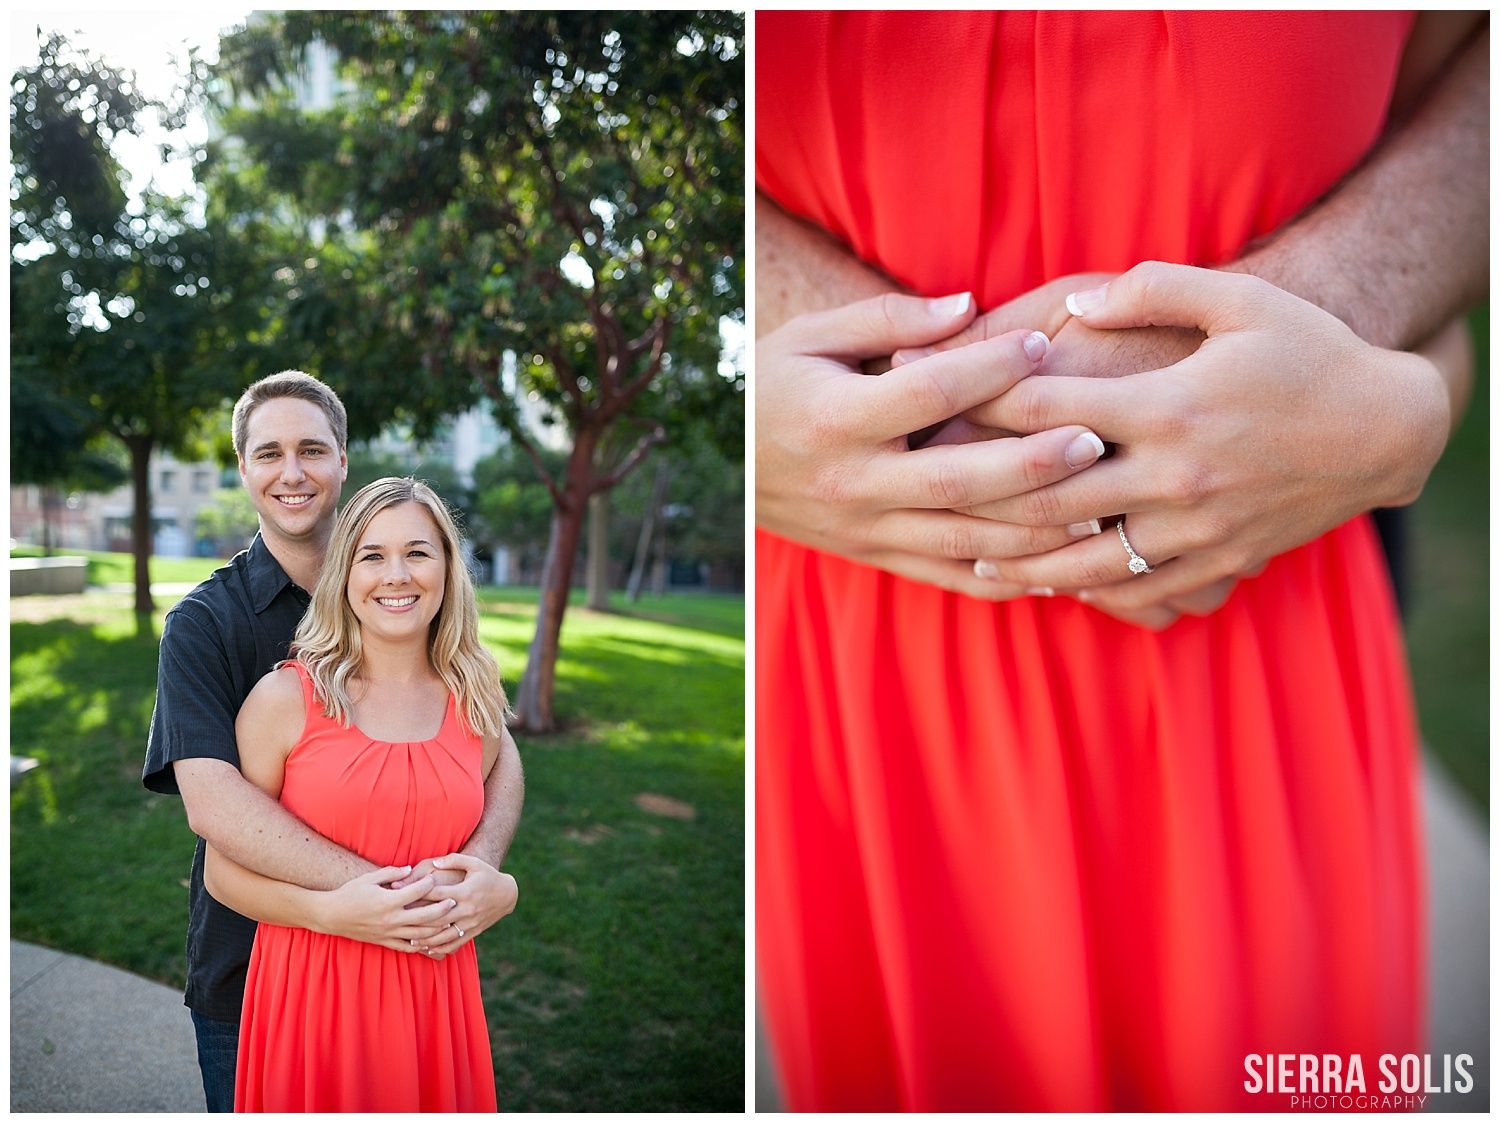 003-151017-brooke-engagement-Sierra-Solis-Photograpy.jpg